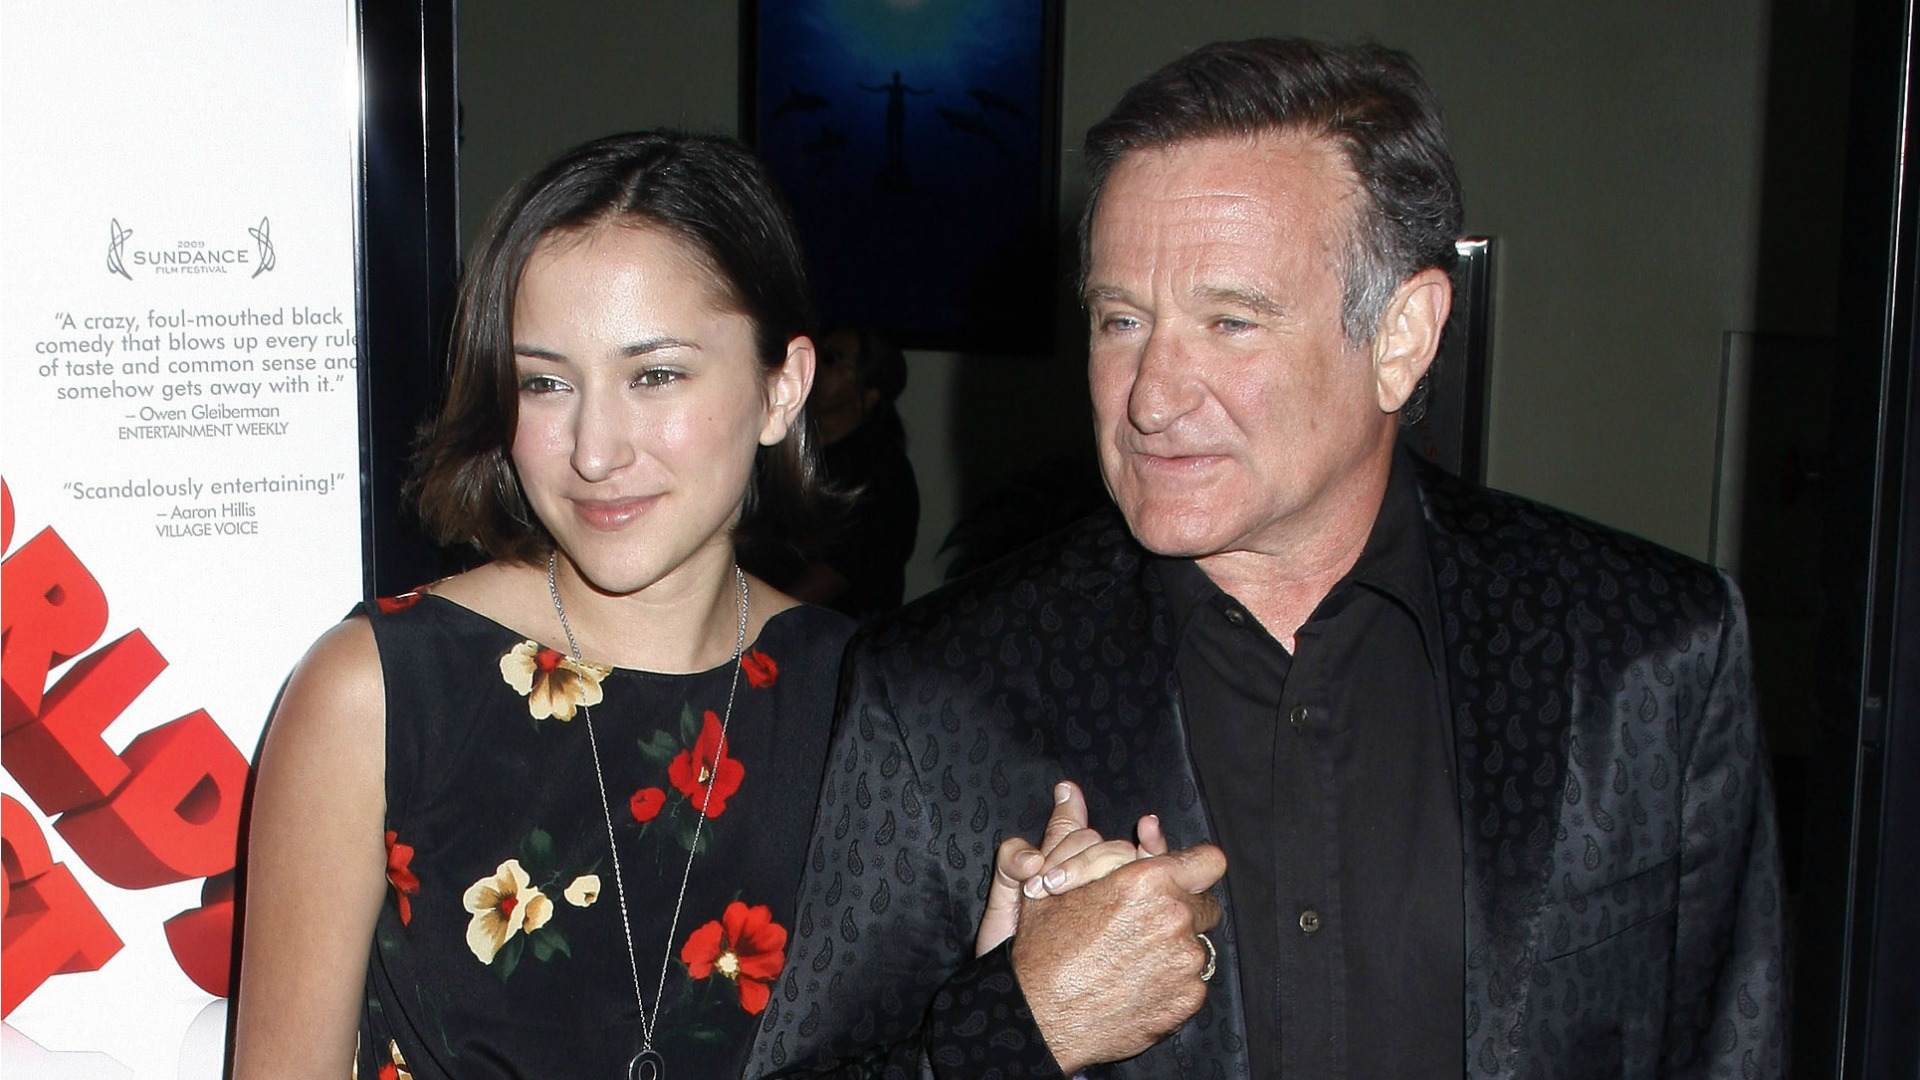 Tributes pour in for Robin Williams, but none as touching as the one from his daughter